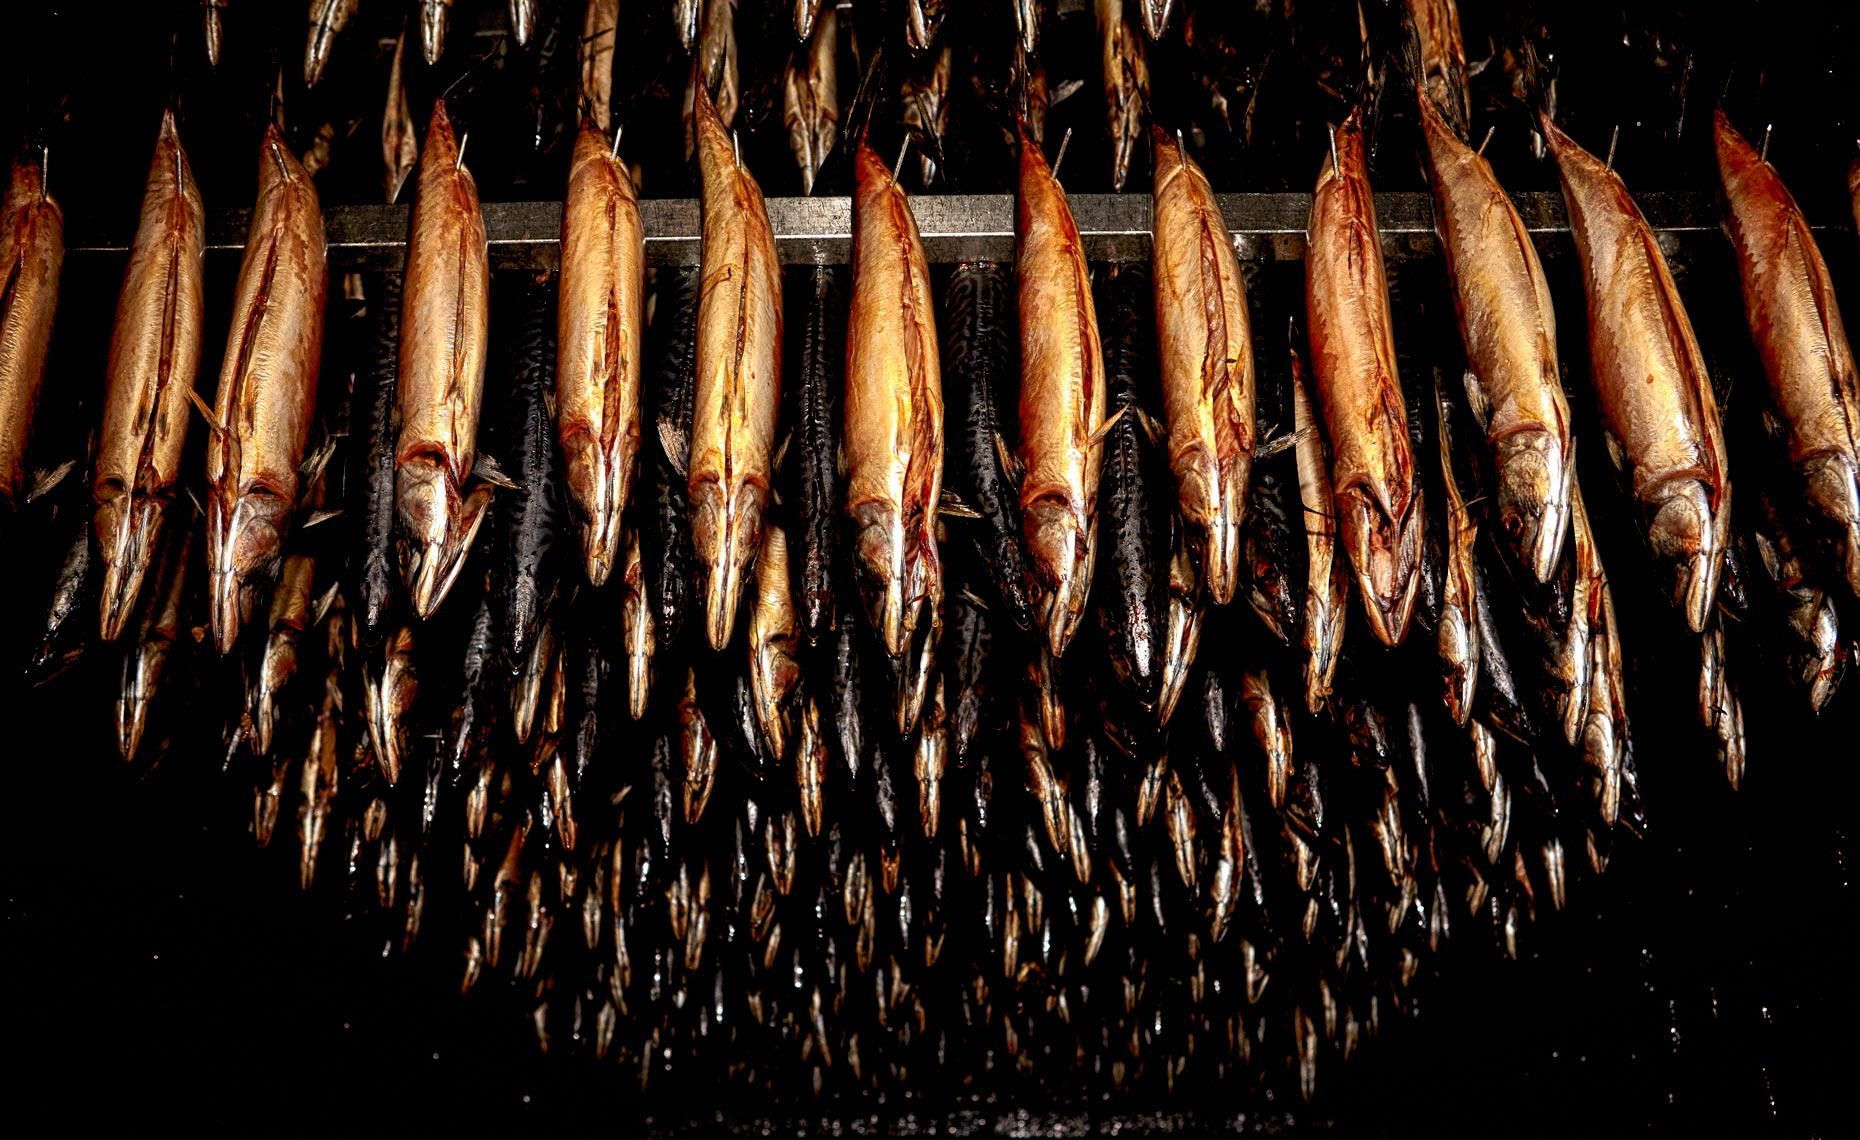 Smoked Fish Photography